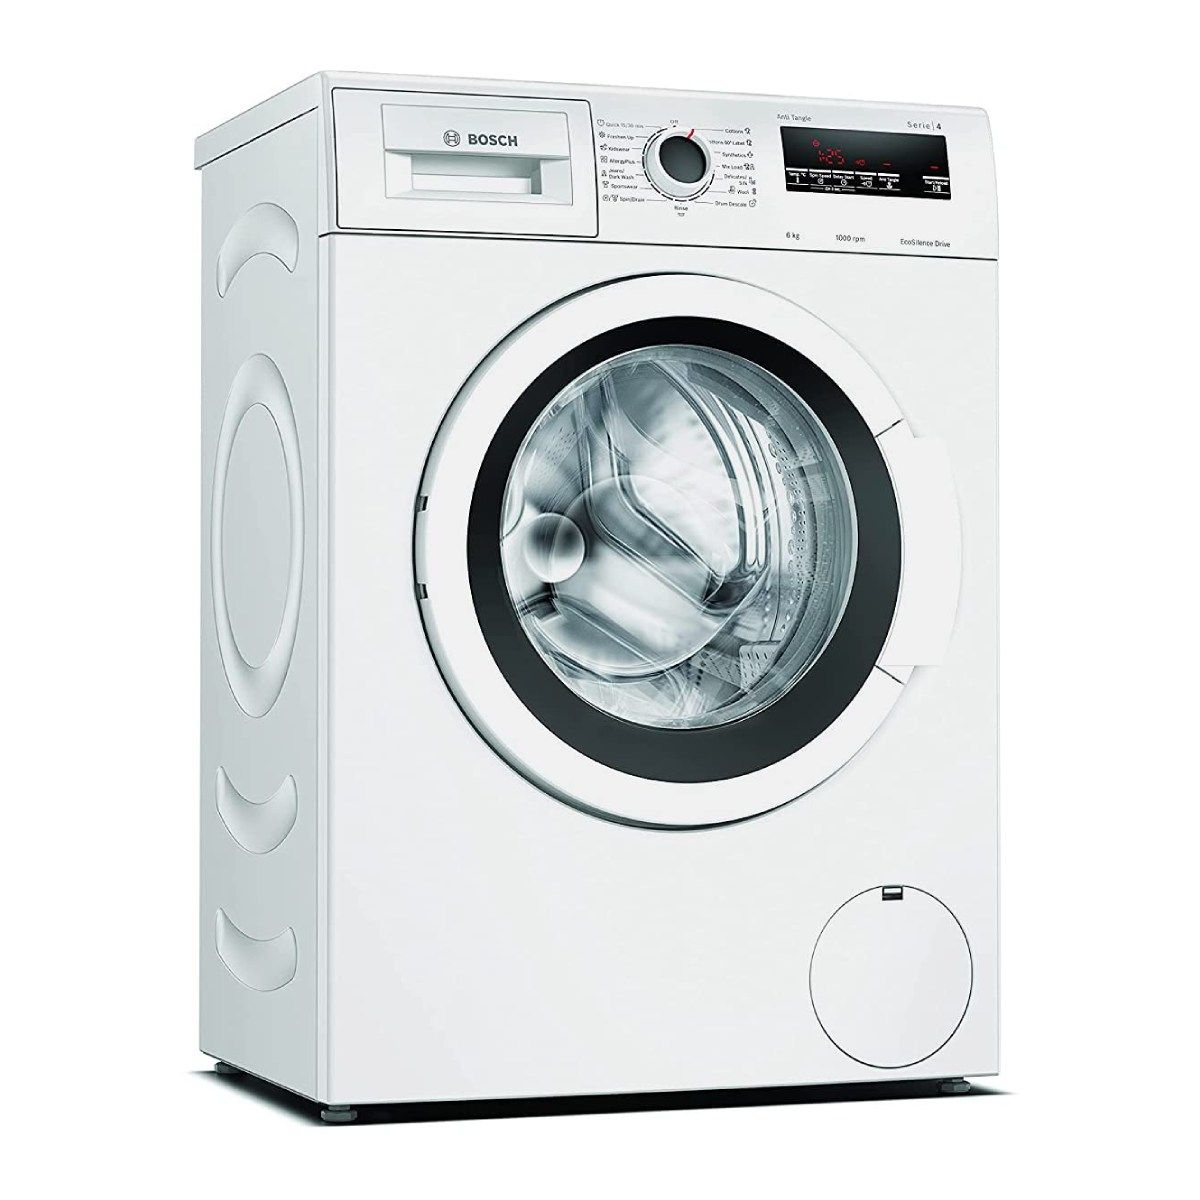 Bosch 6 kg 5 Star Inverter Fully Automatic Front Loading Washing Machine (WLJ2016WIN)